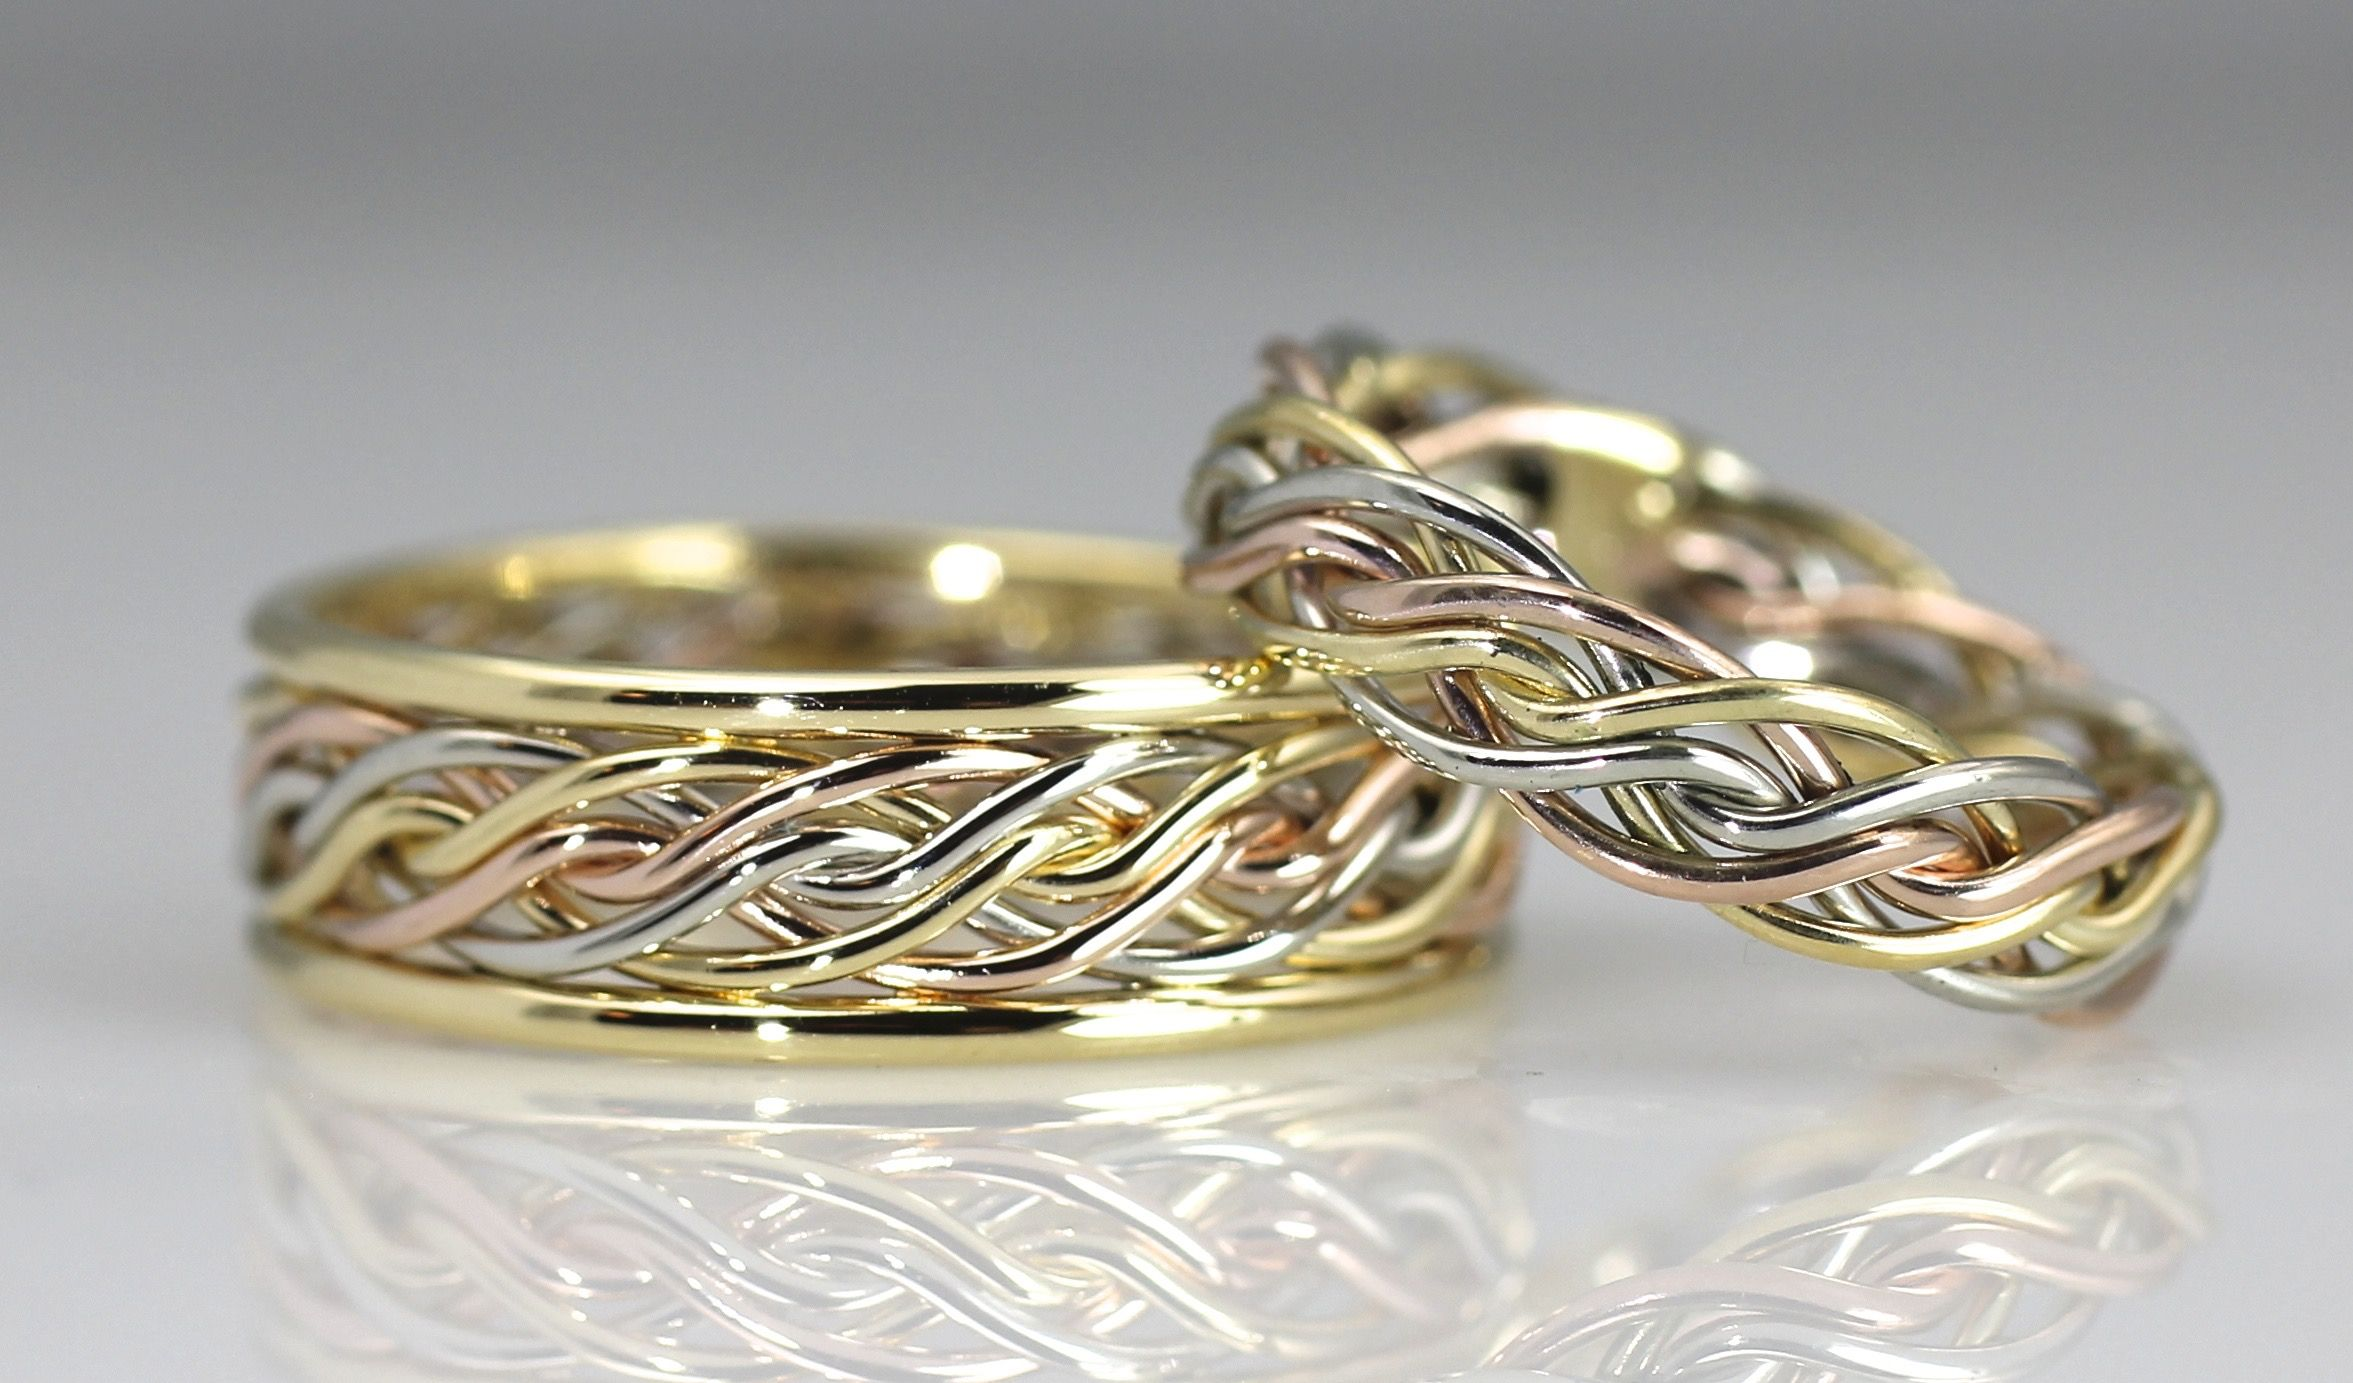 Braided Unique Wedding Rings Handmade By Artist Todd Alan Braided Wedding Rings Celtic Wedding Rings Wedding Rings Solitaire